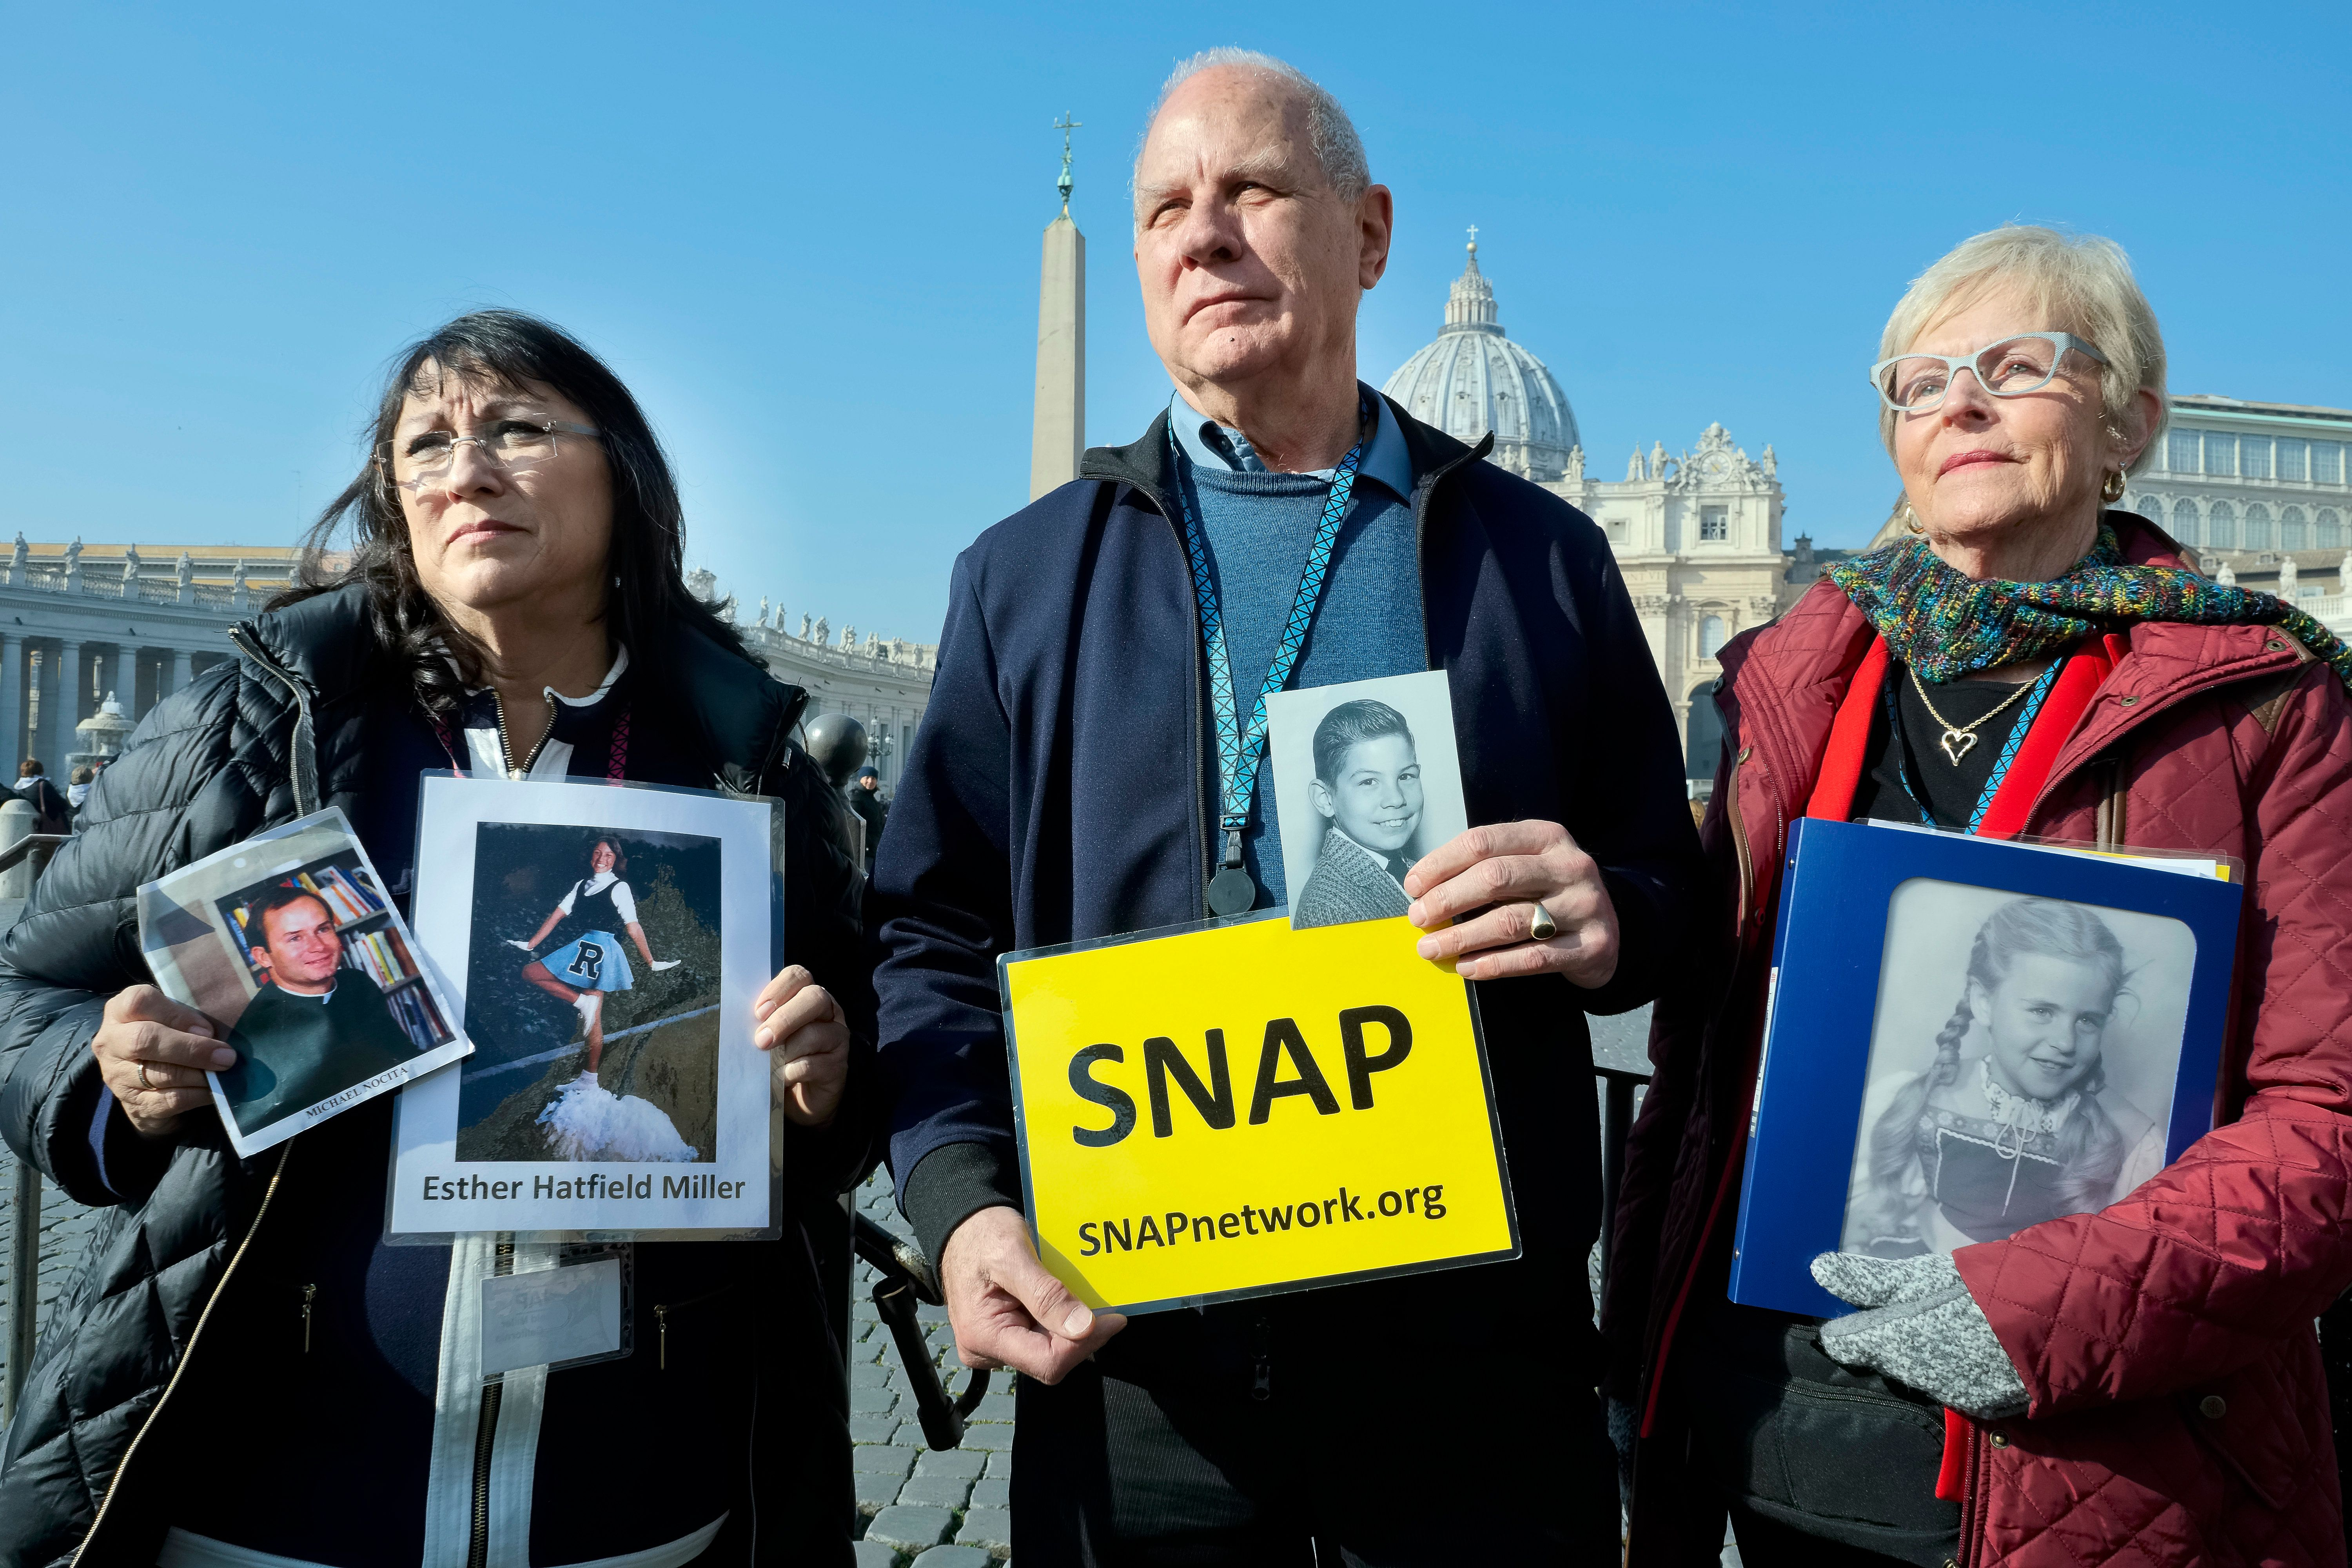 SNAP President Tim Lennon and members Esther Hatfield Miller (left) and Carol Midboe in St. Peter's Square at the Vatican dur